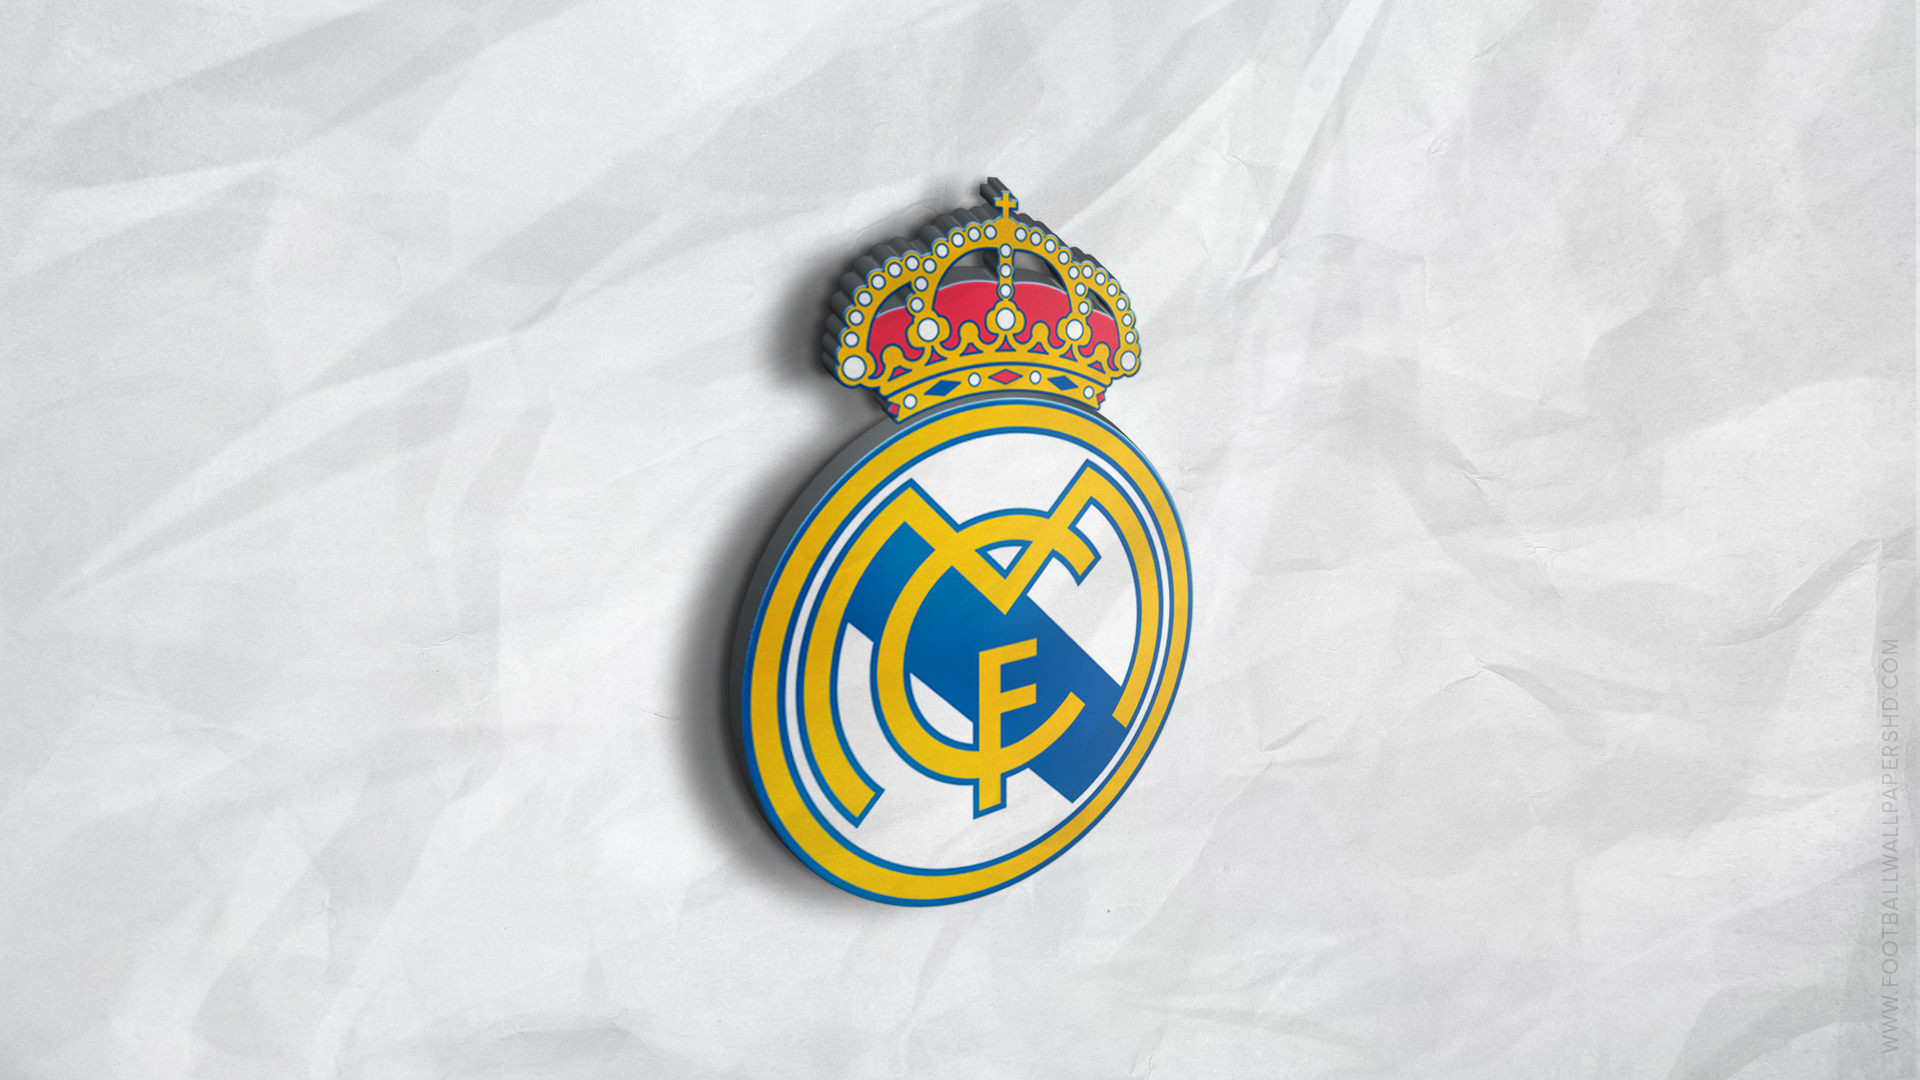 Real madrid wallpaper hd 2018 71 images 1364x2382 real madrid 20172018 home kit poster by ziadelprince22 on deviantart voltagebd Image collections